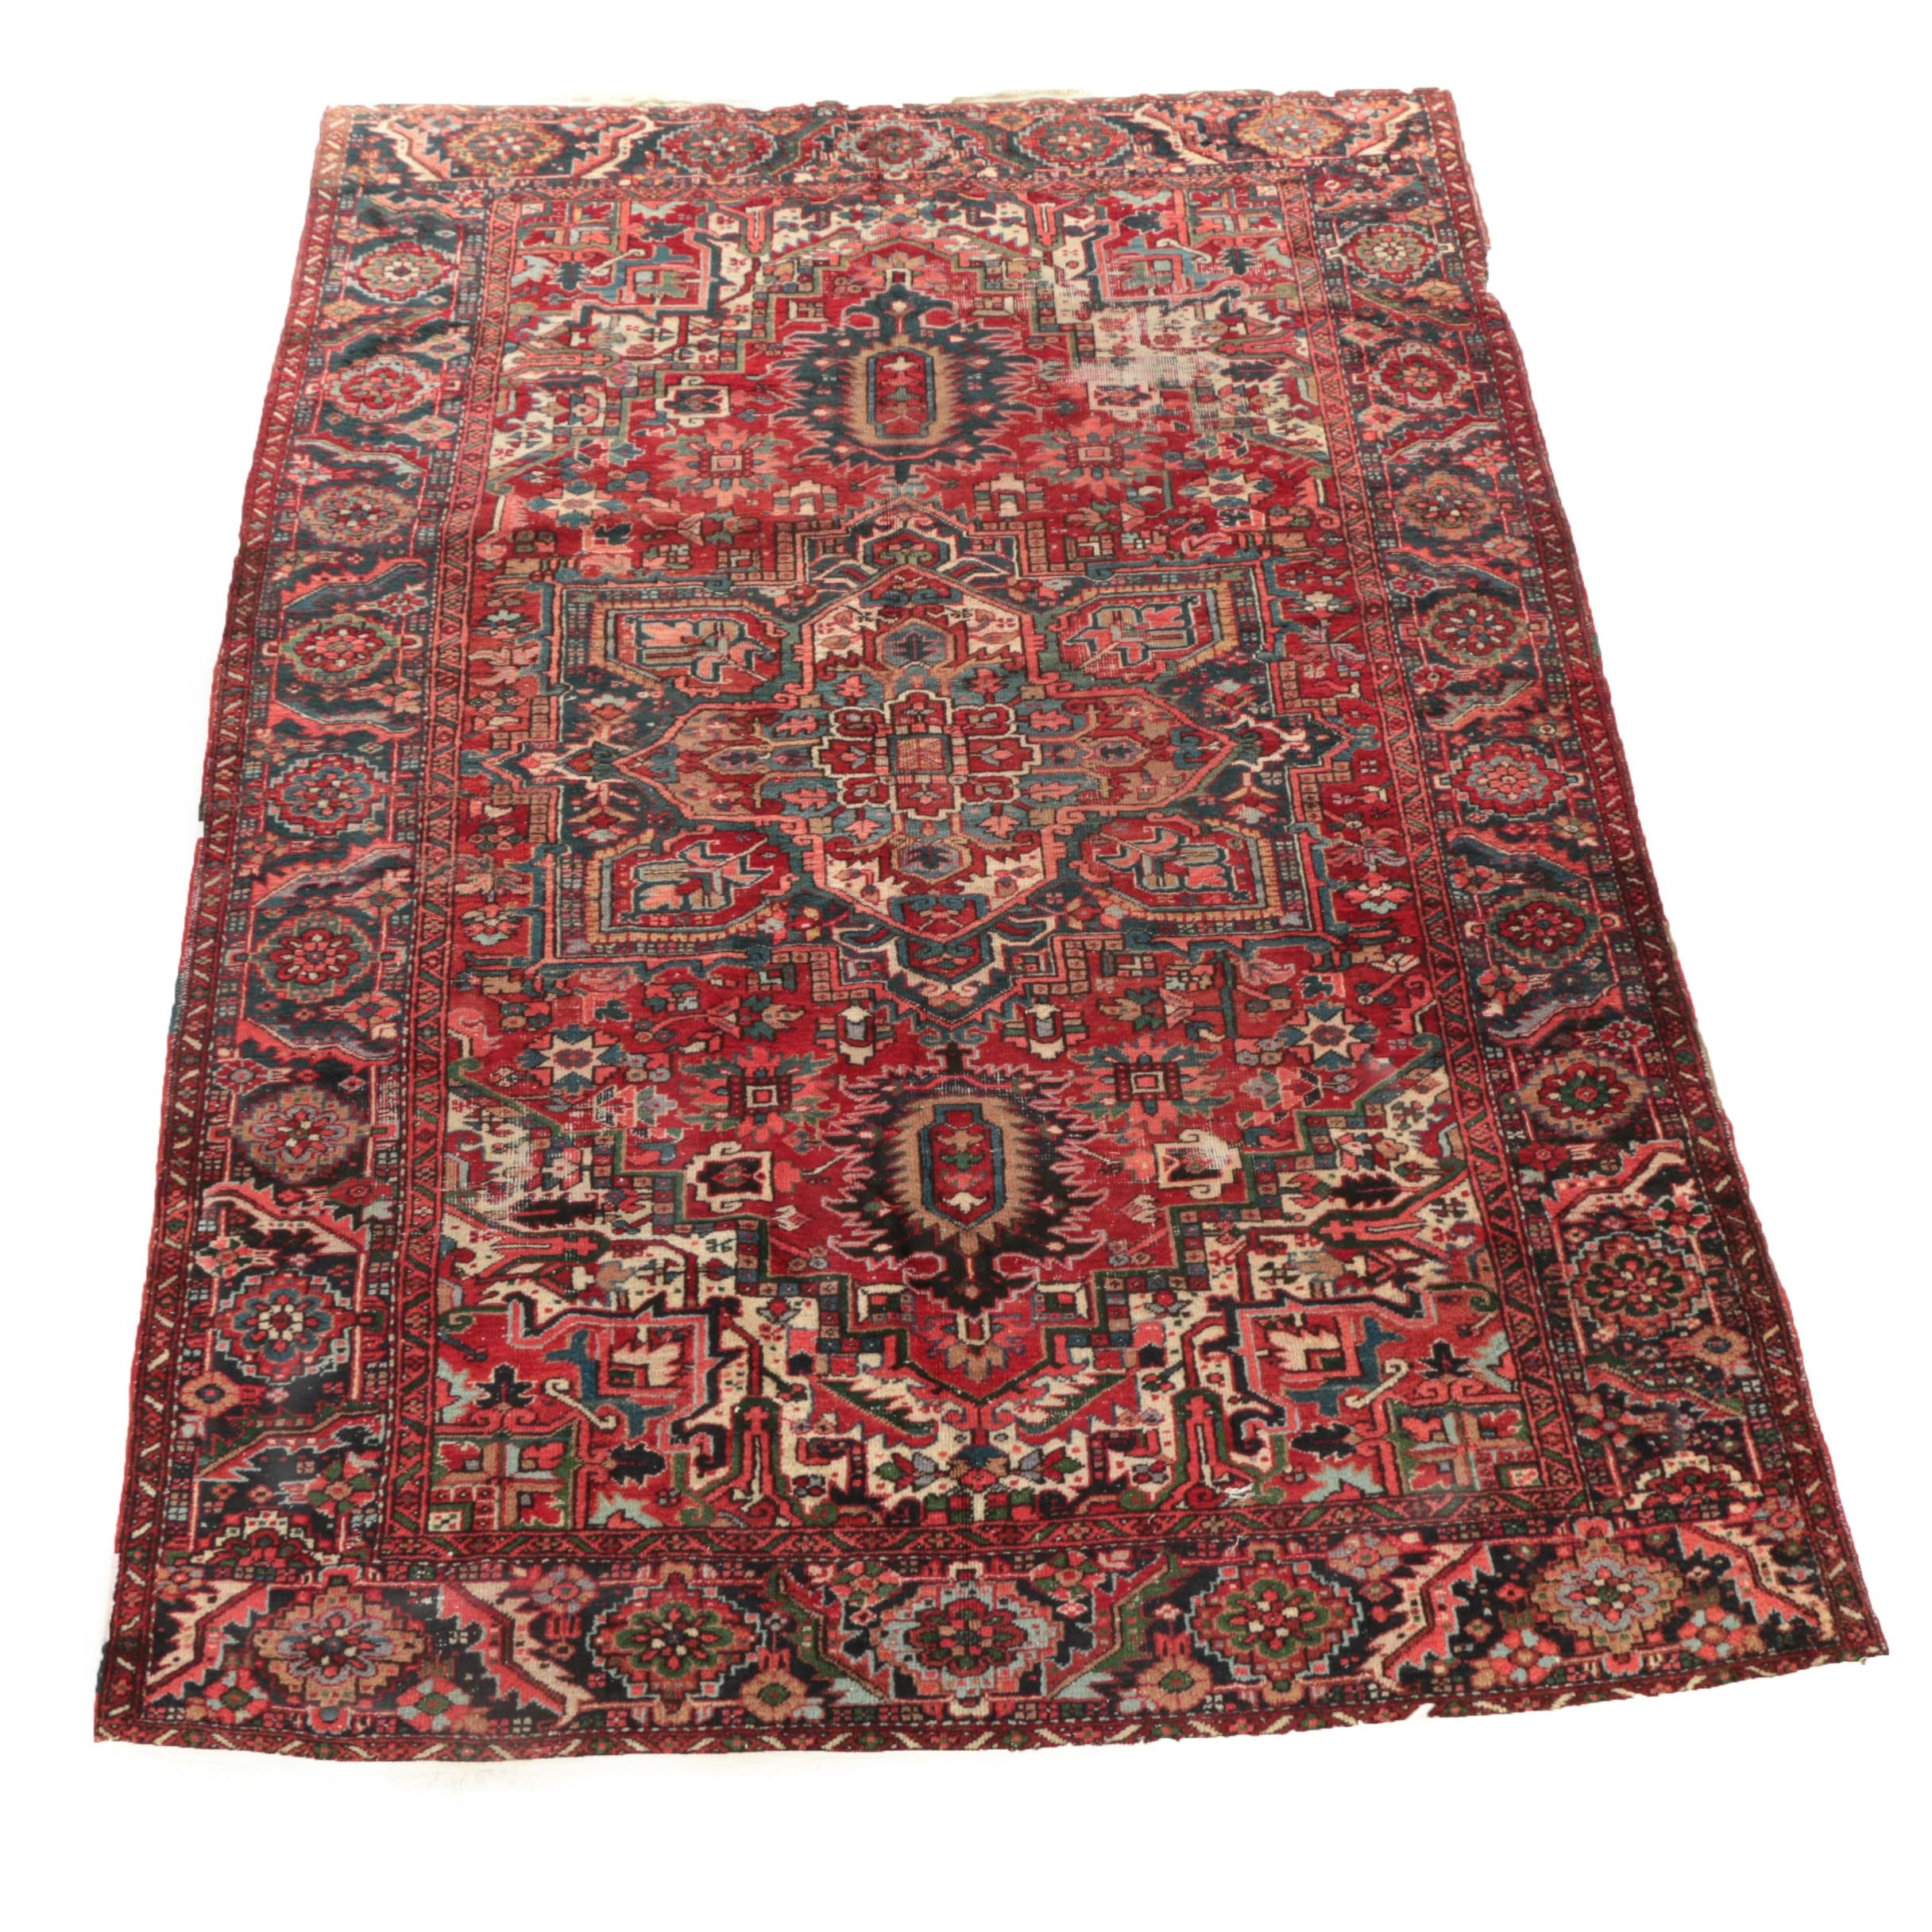 Semi-Antique Hand-Knotted Persian Heriz Serapi Wool Room Sized Rug